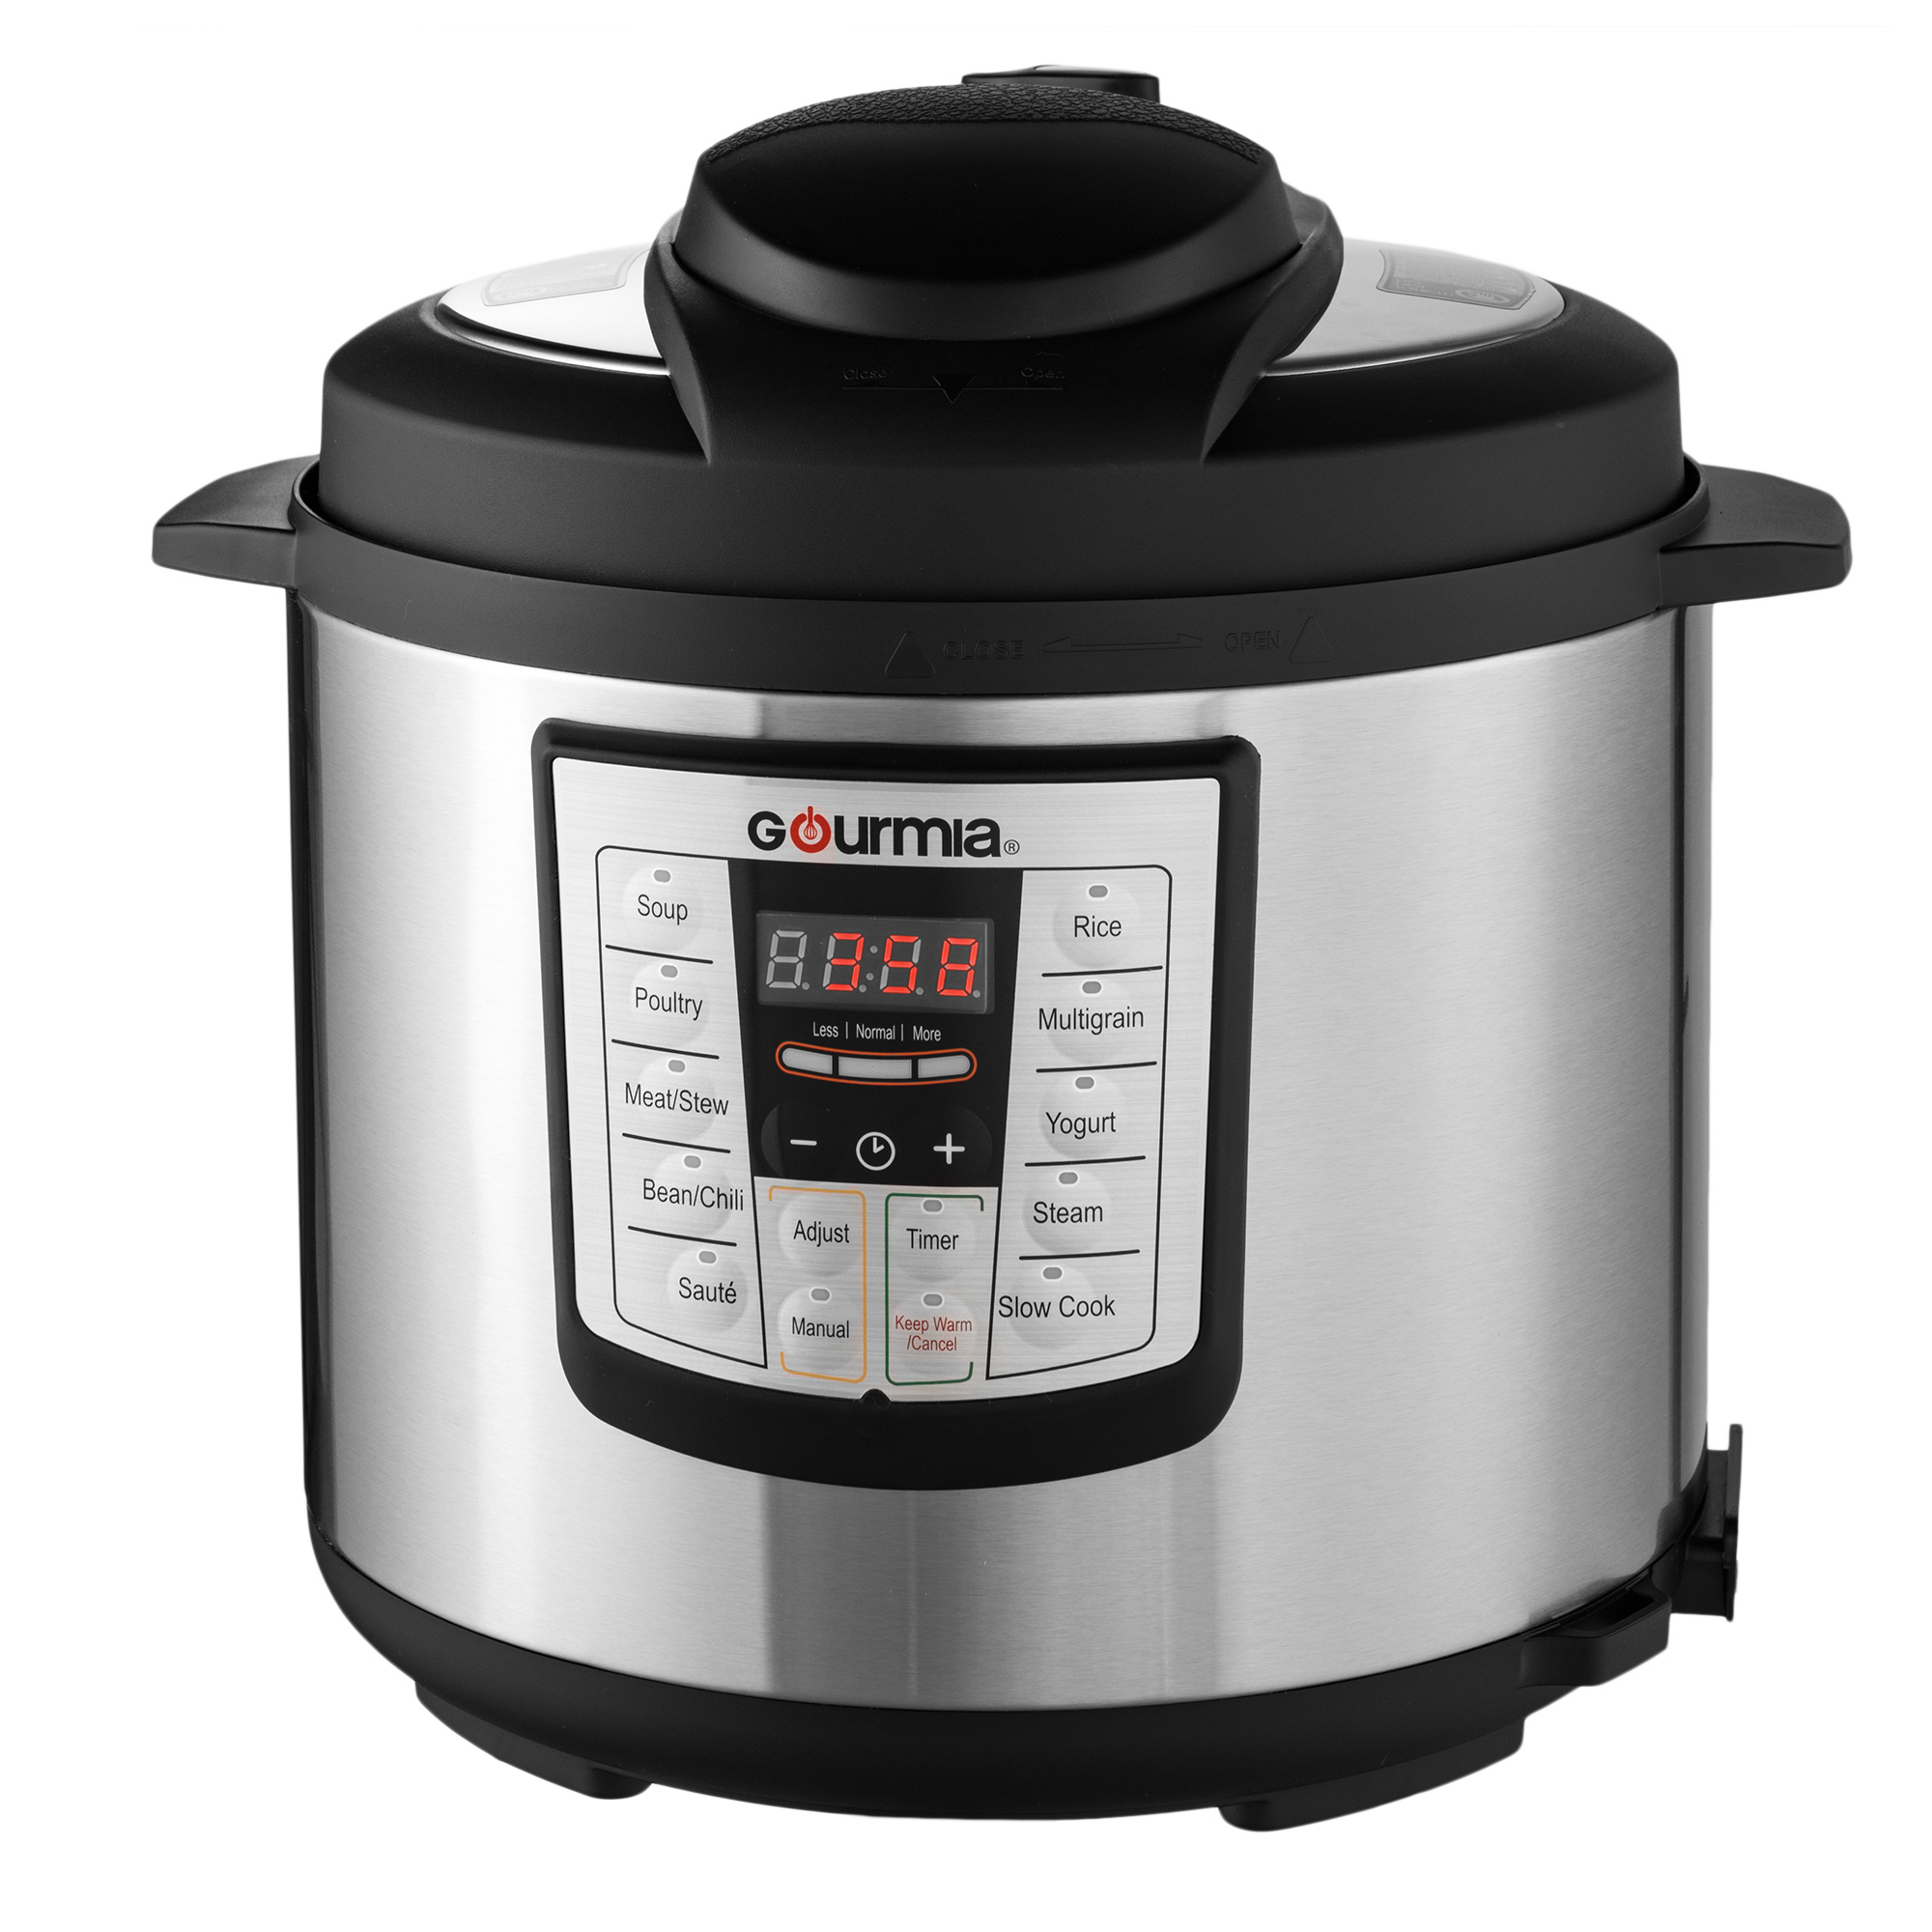 Gourmia GP600 Stainless Steel 6-Quart Smartpot 8-in-1 Programmable MultiFunction Pressure Cooker